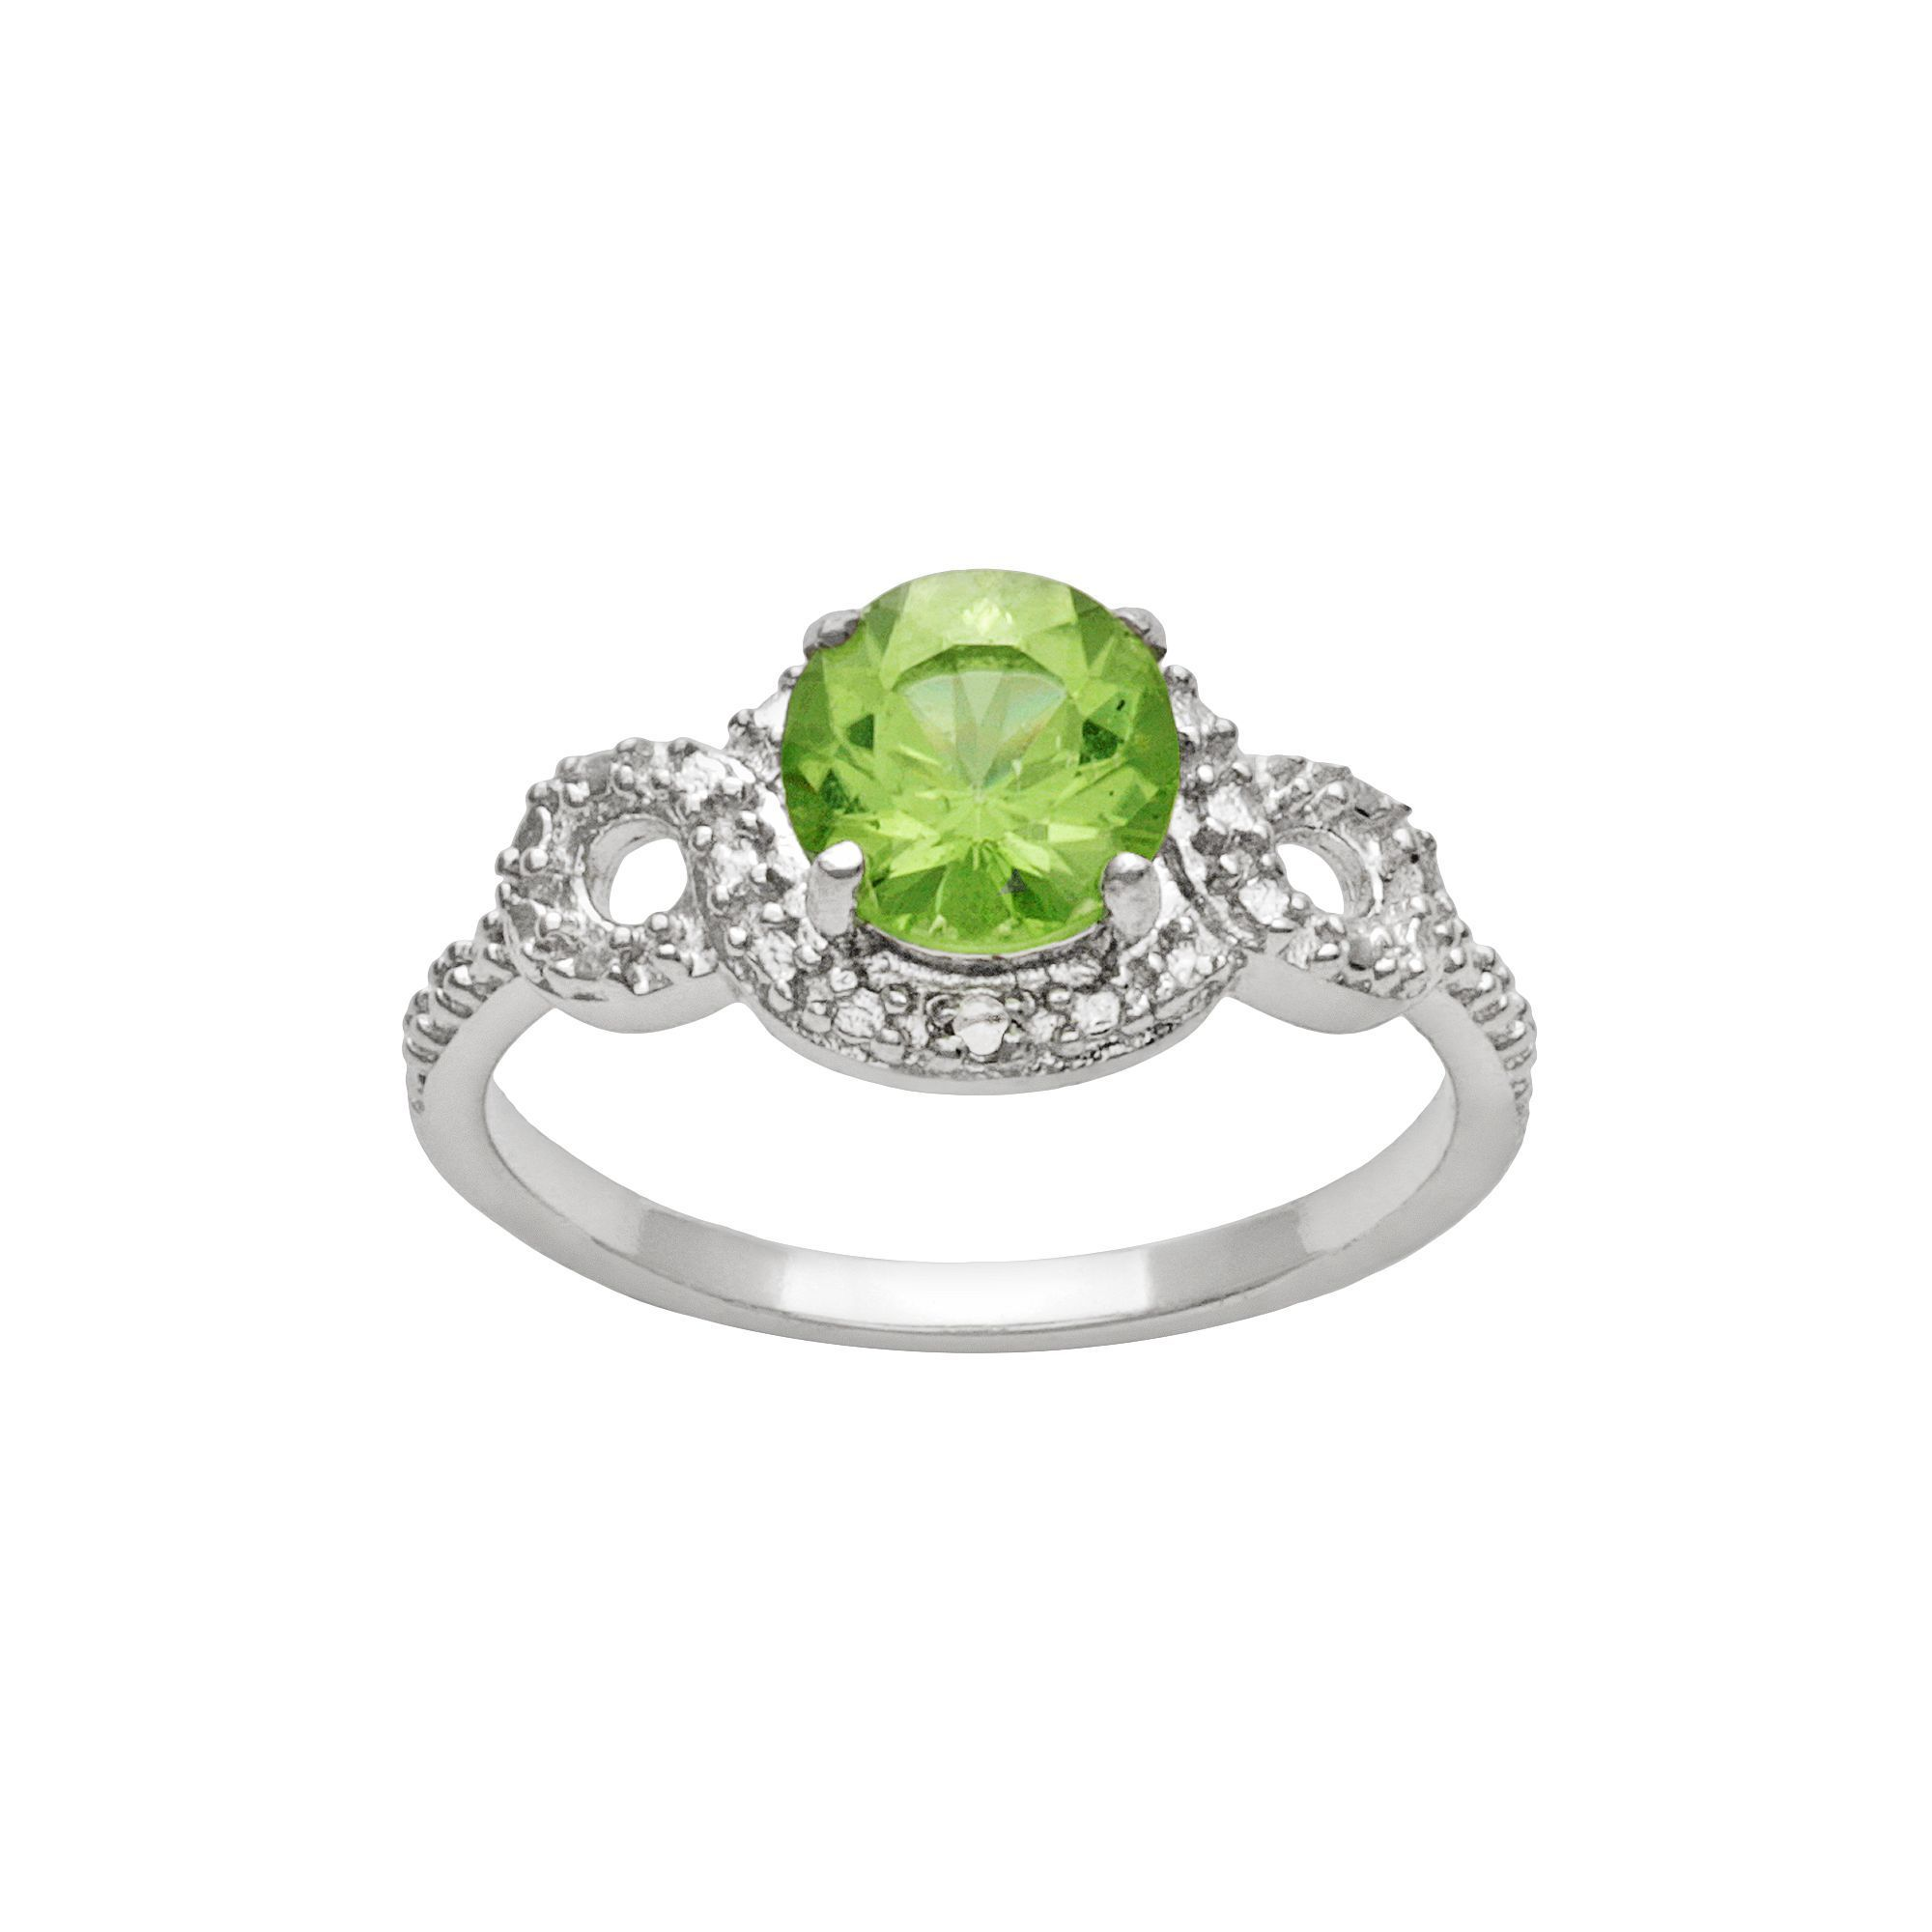 ring prod rings qgold oval wedding diamond b bridal peridot src jewelry engagement size sears com cut and accent